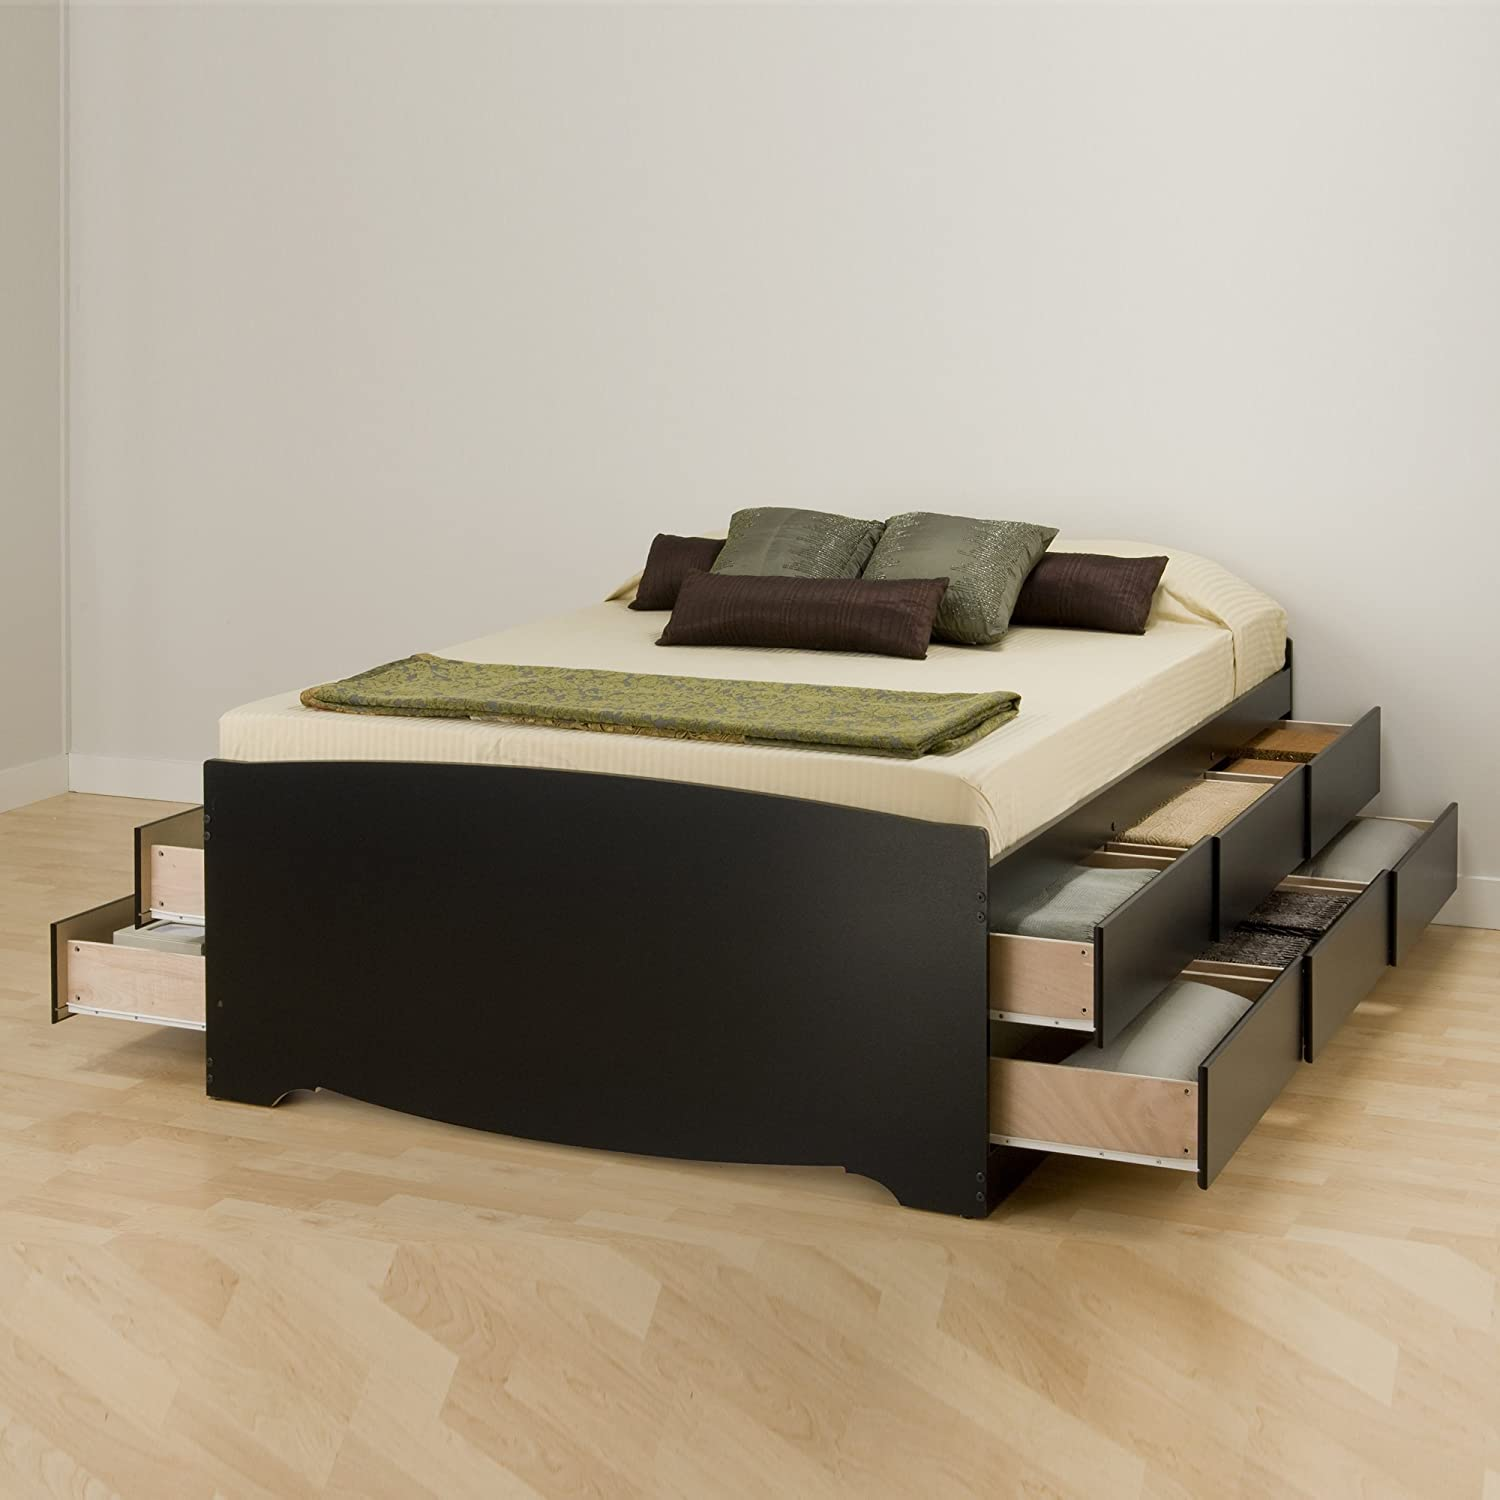 Amazon Com Prepac K Tall Queen Sonoma Platform Storage Bed With